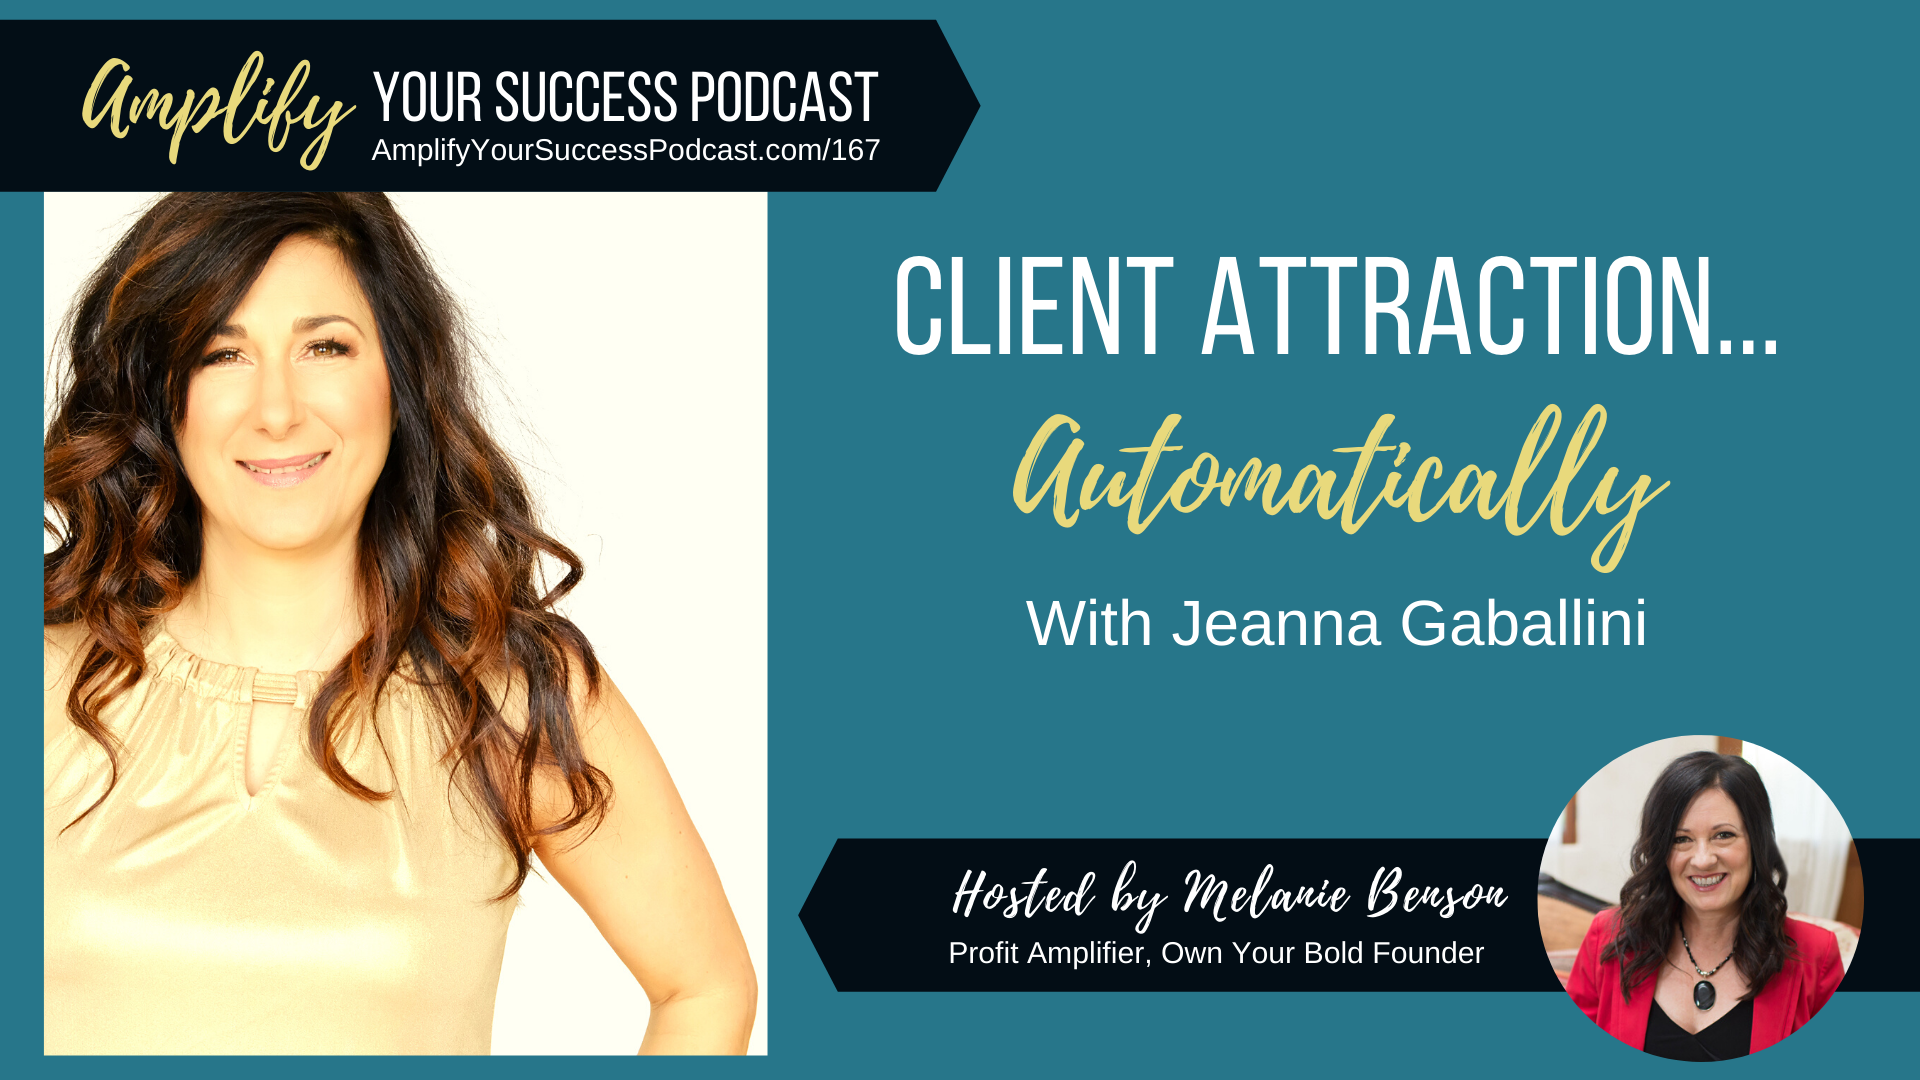 Client Attraction…on Automatic with Jeanna Gabellini on Amplify Your Success #Podcast Episode 167 with Melanie Benson